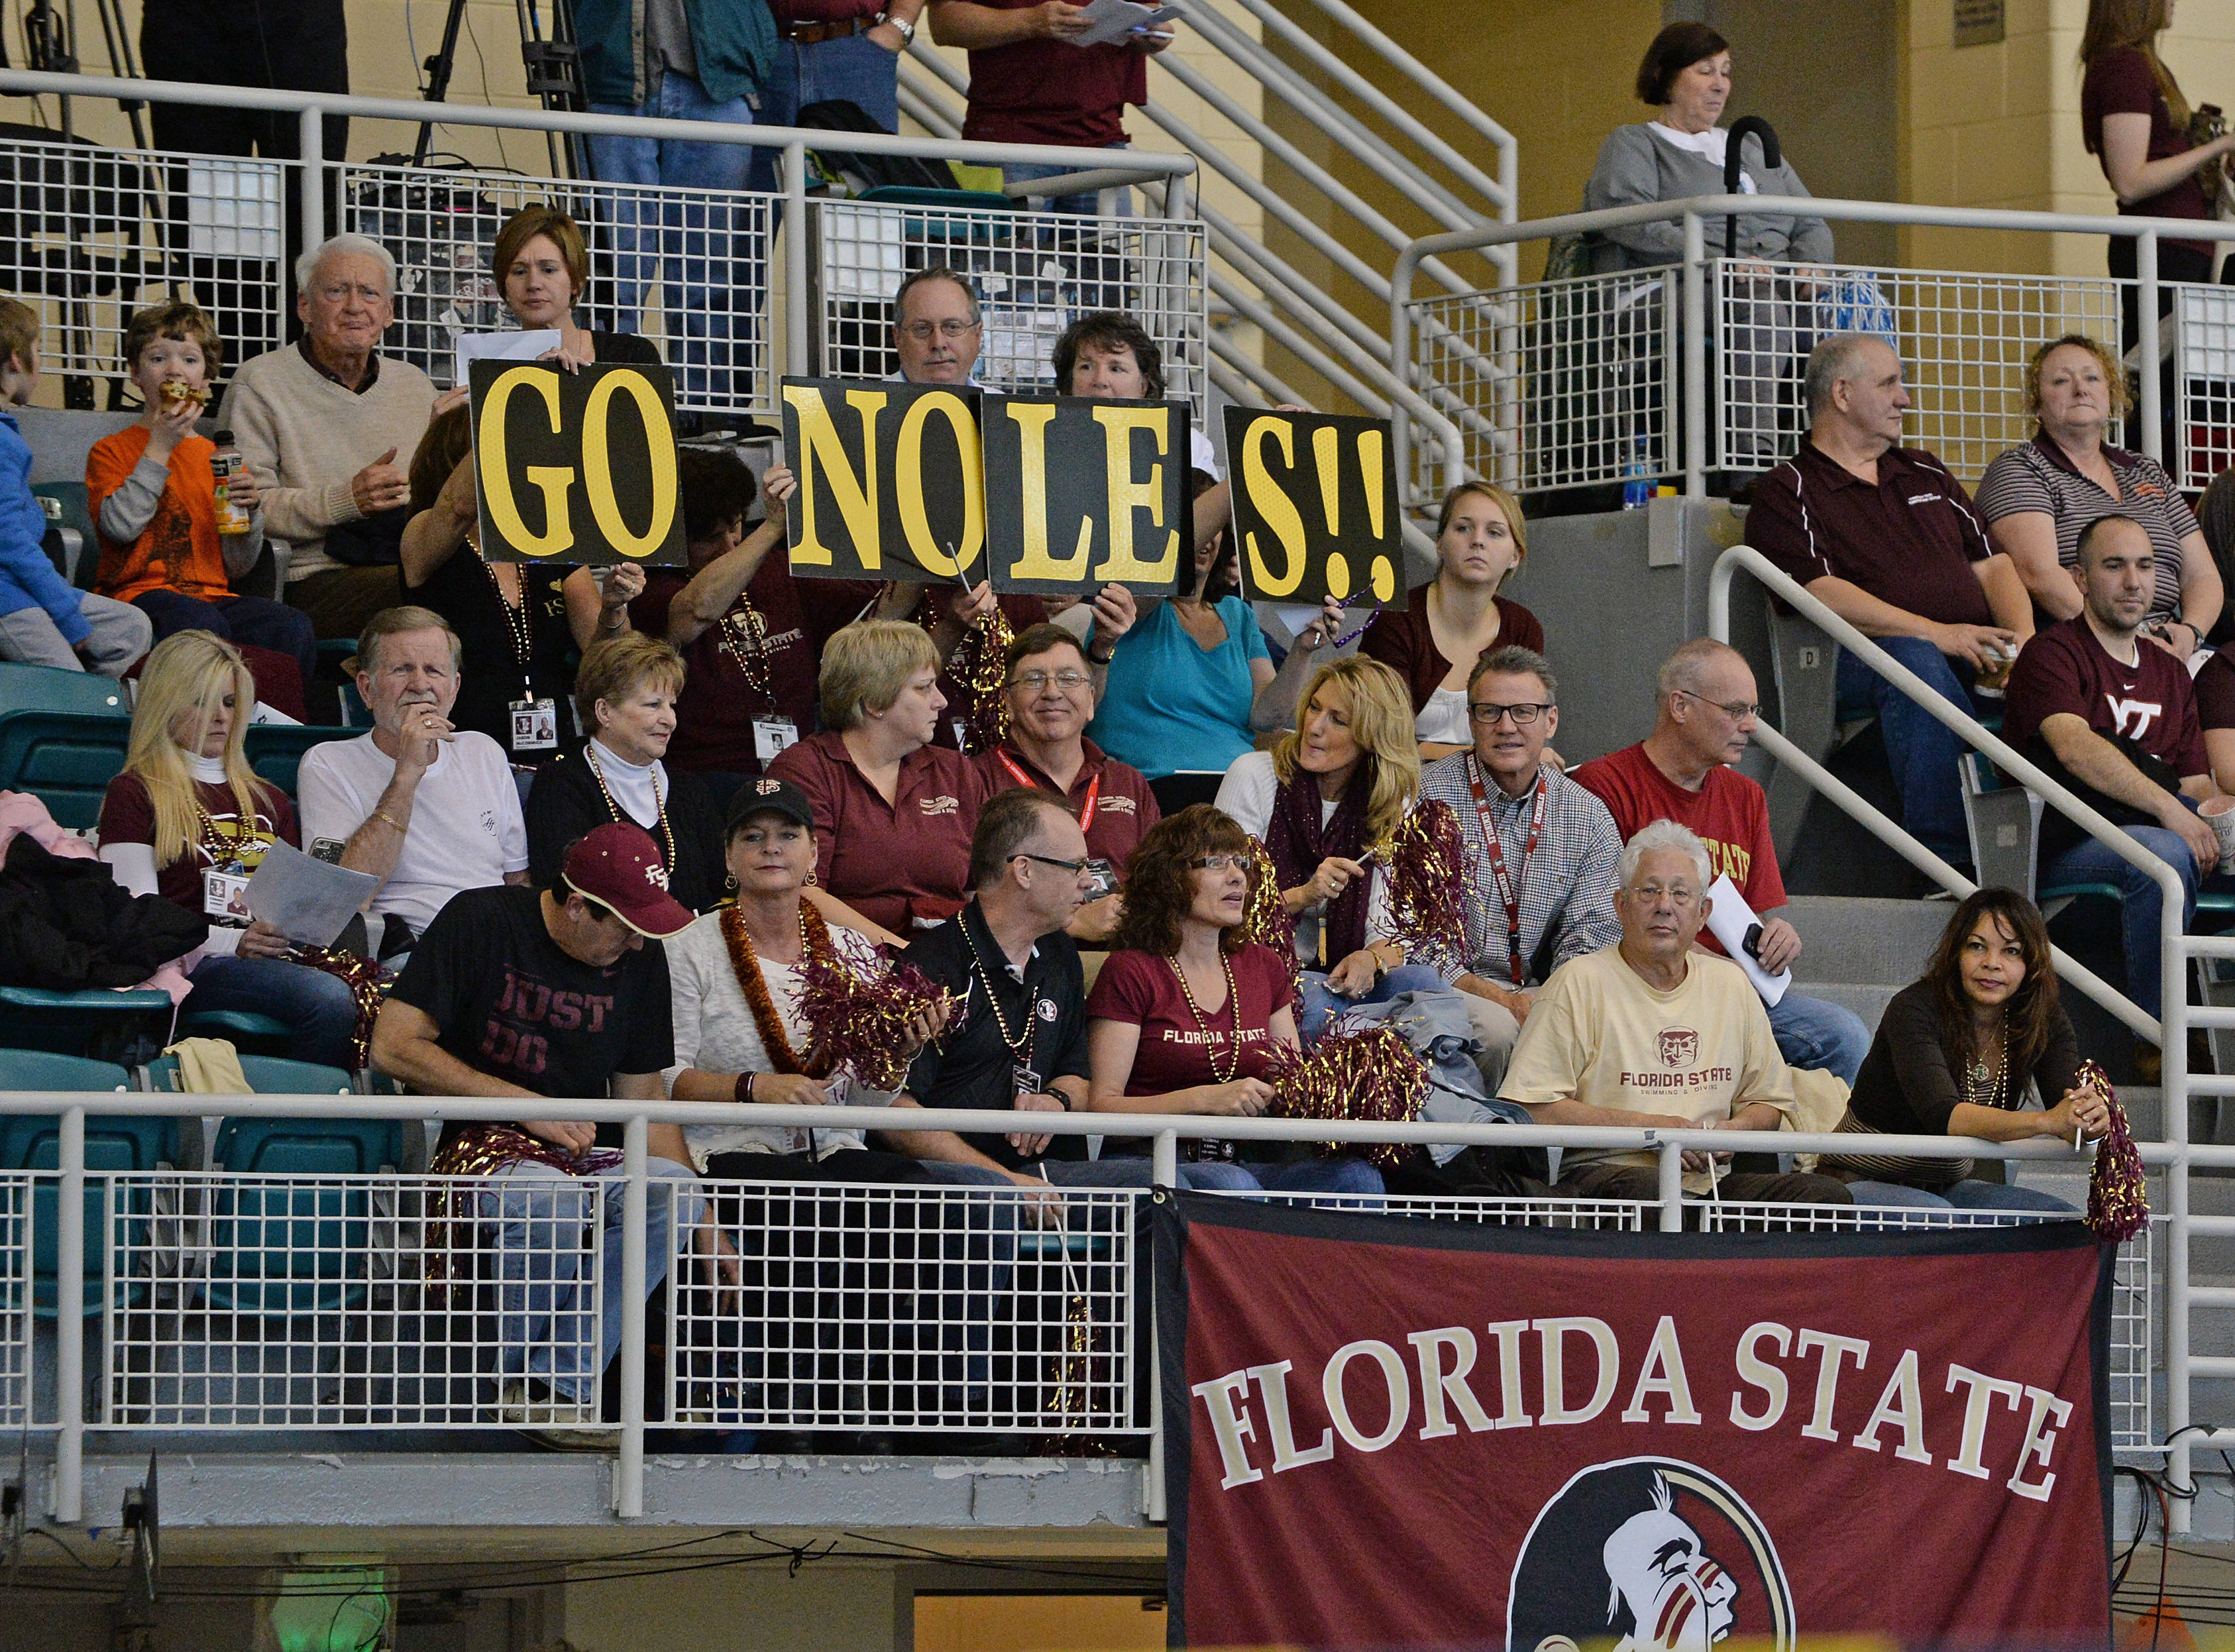 The parents cheer on their swimmers - Mitch White